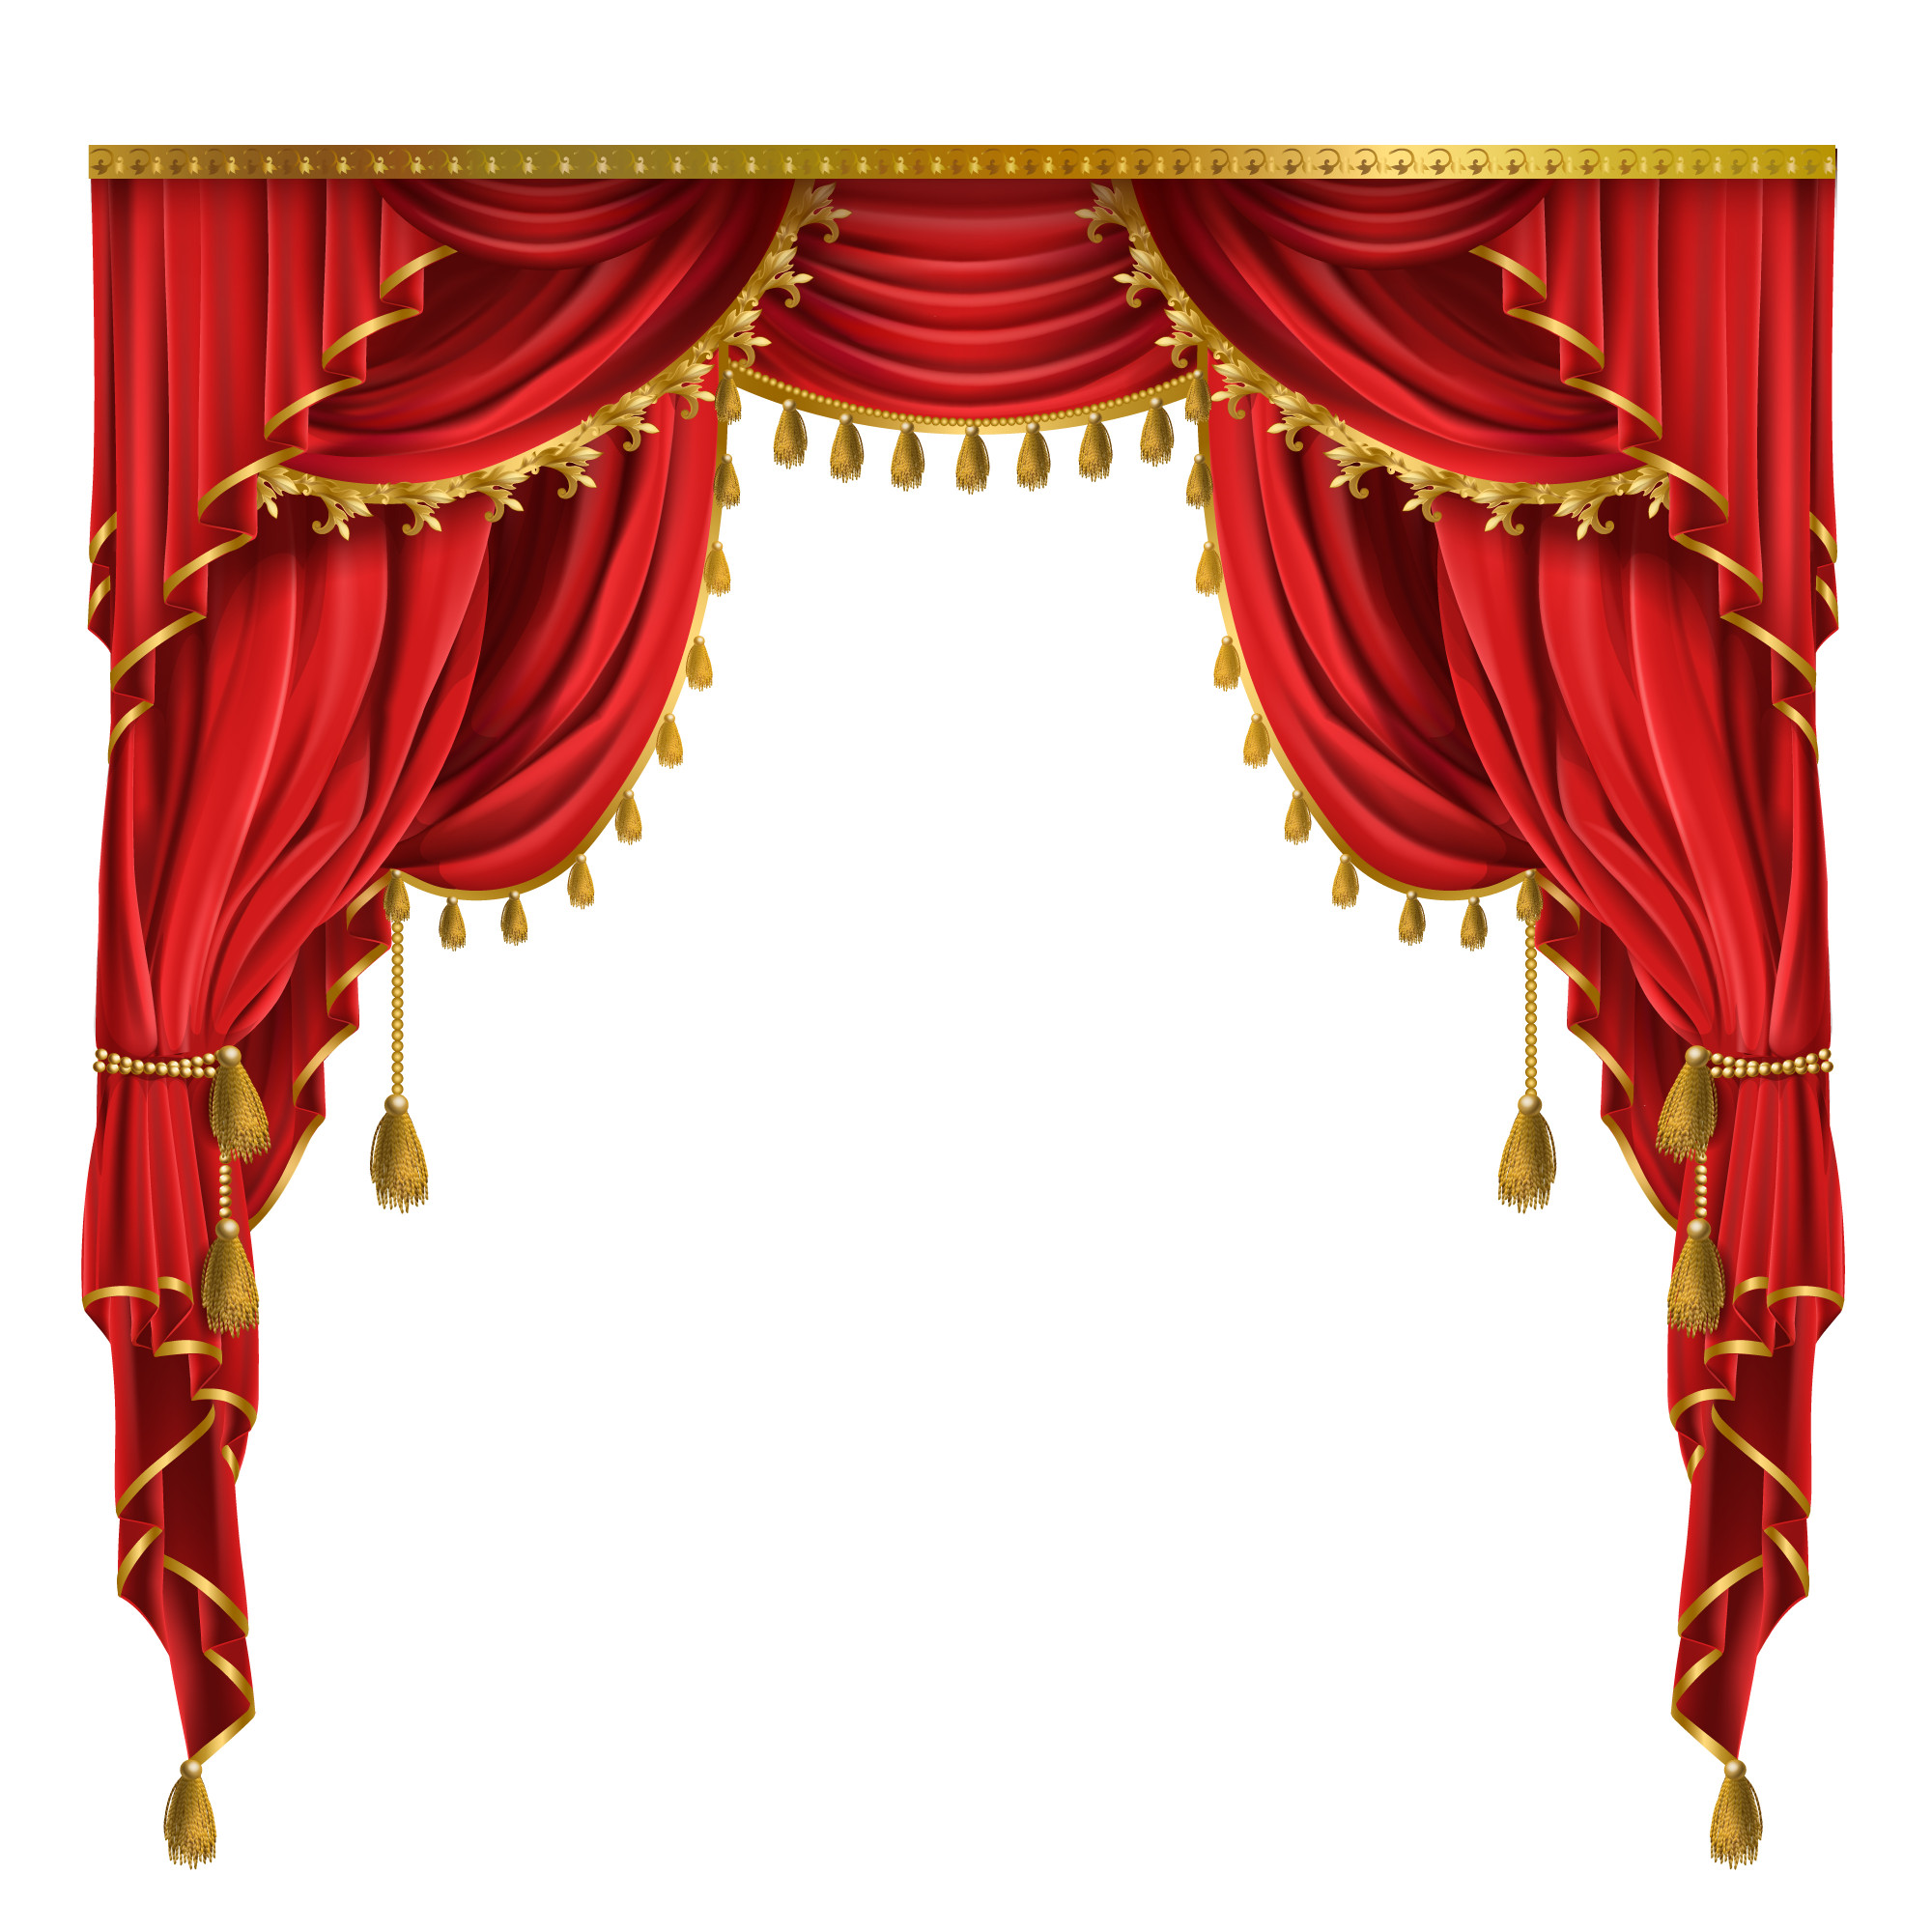 Luxury red curtains in victorian style, with drapery, tied with golden cord